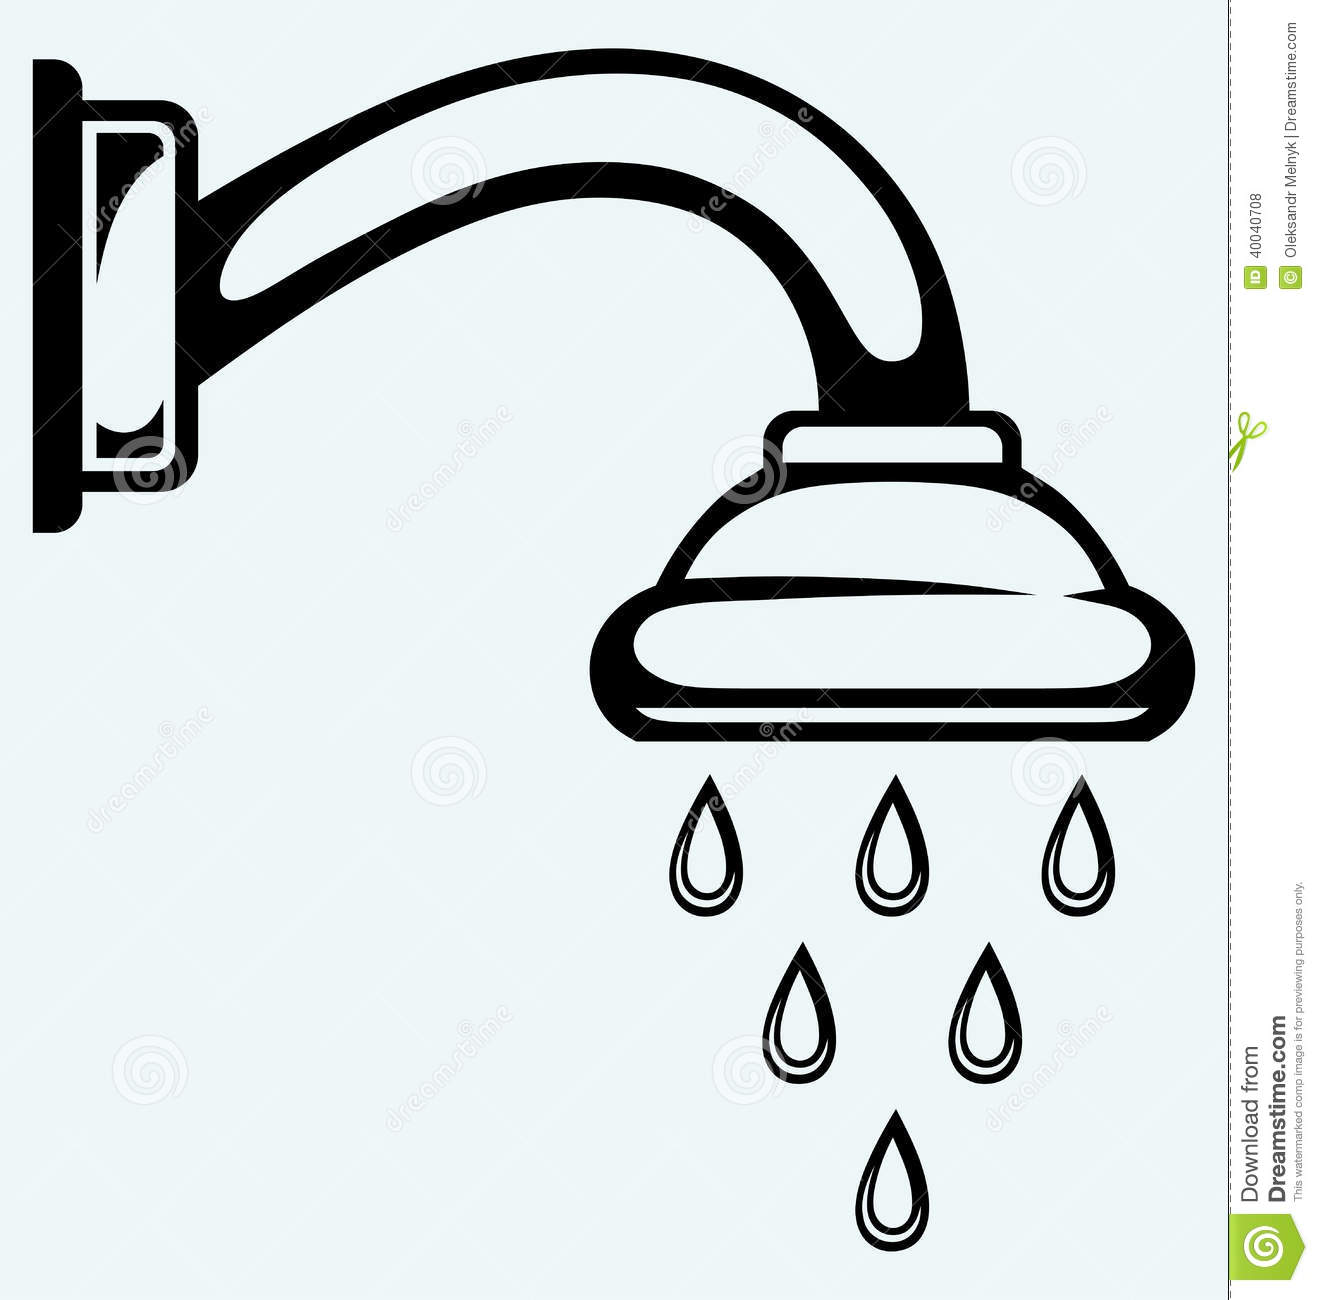 Shower head clip art image library download Bathroom Shower Head Clip Art – Clipart Free Download image library download